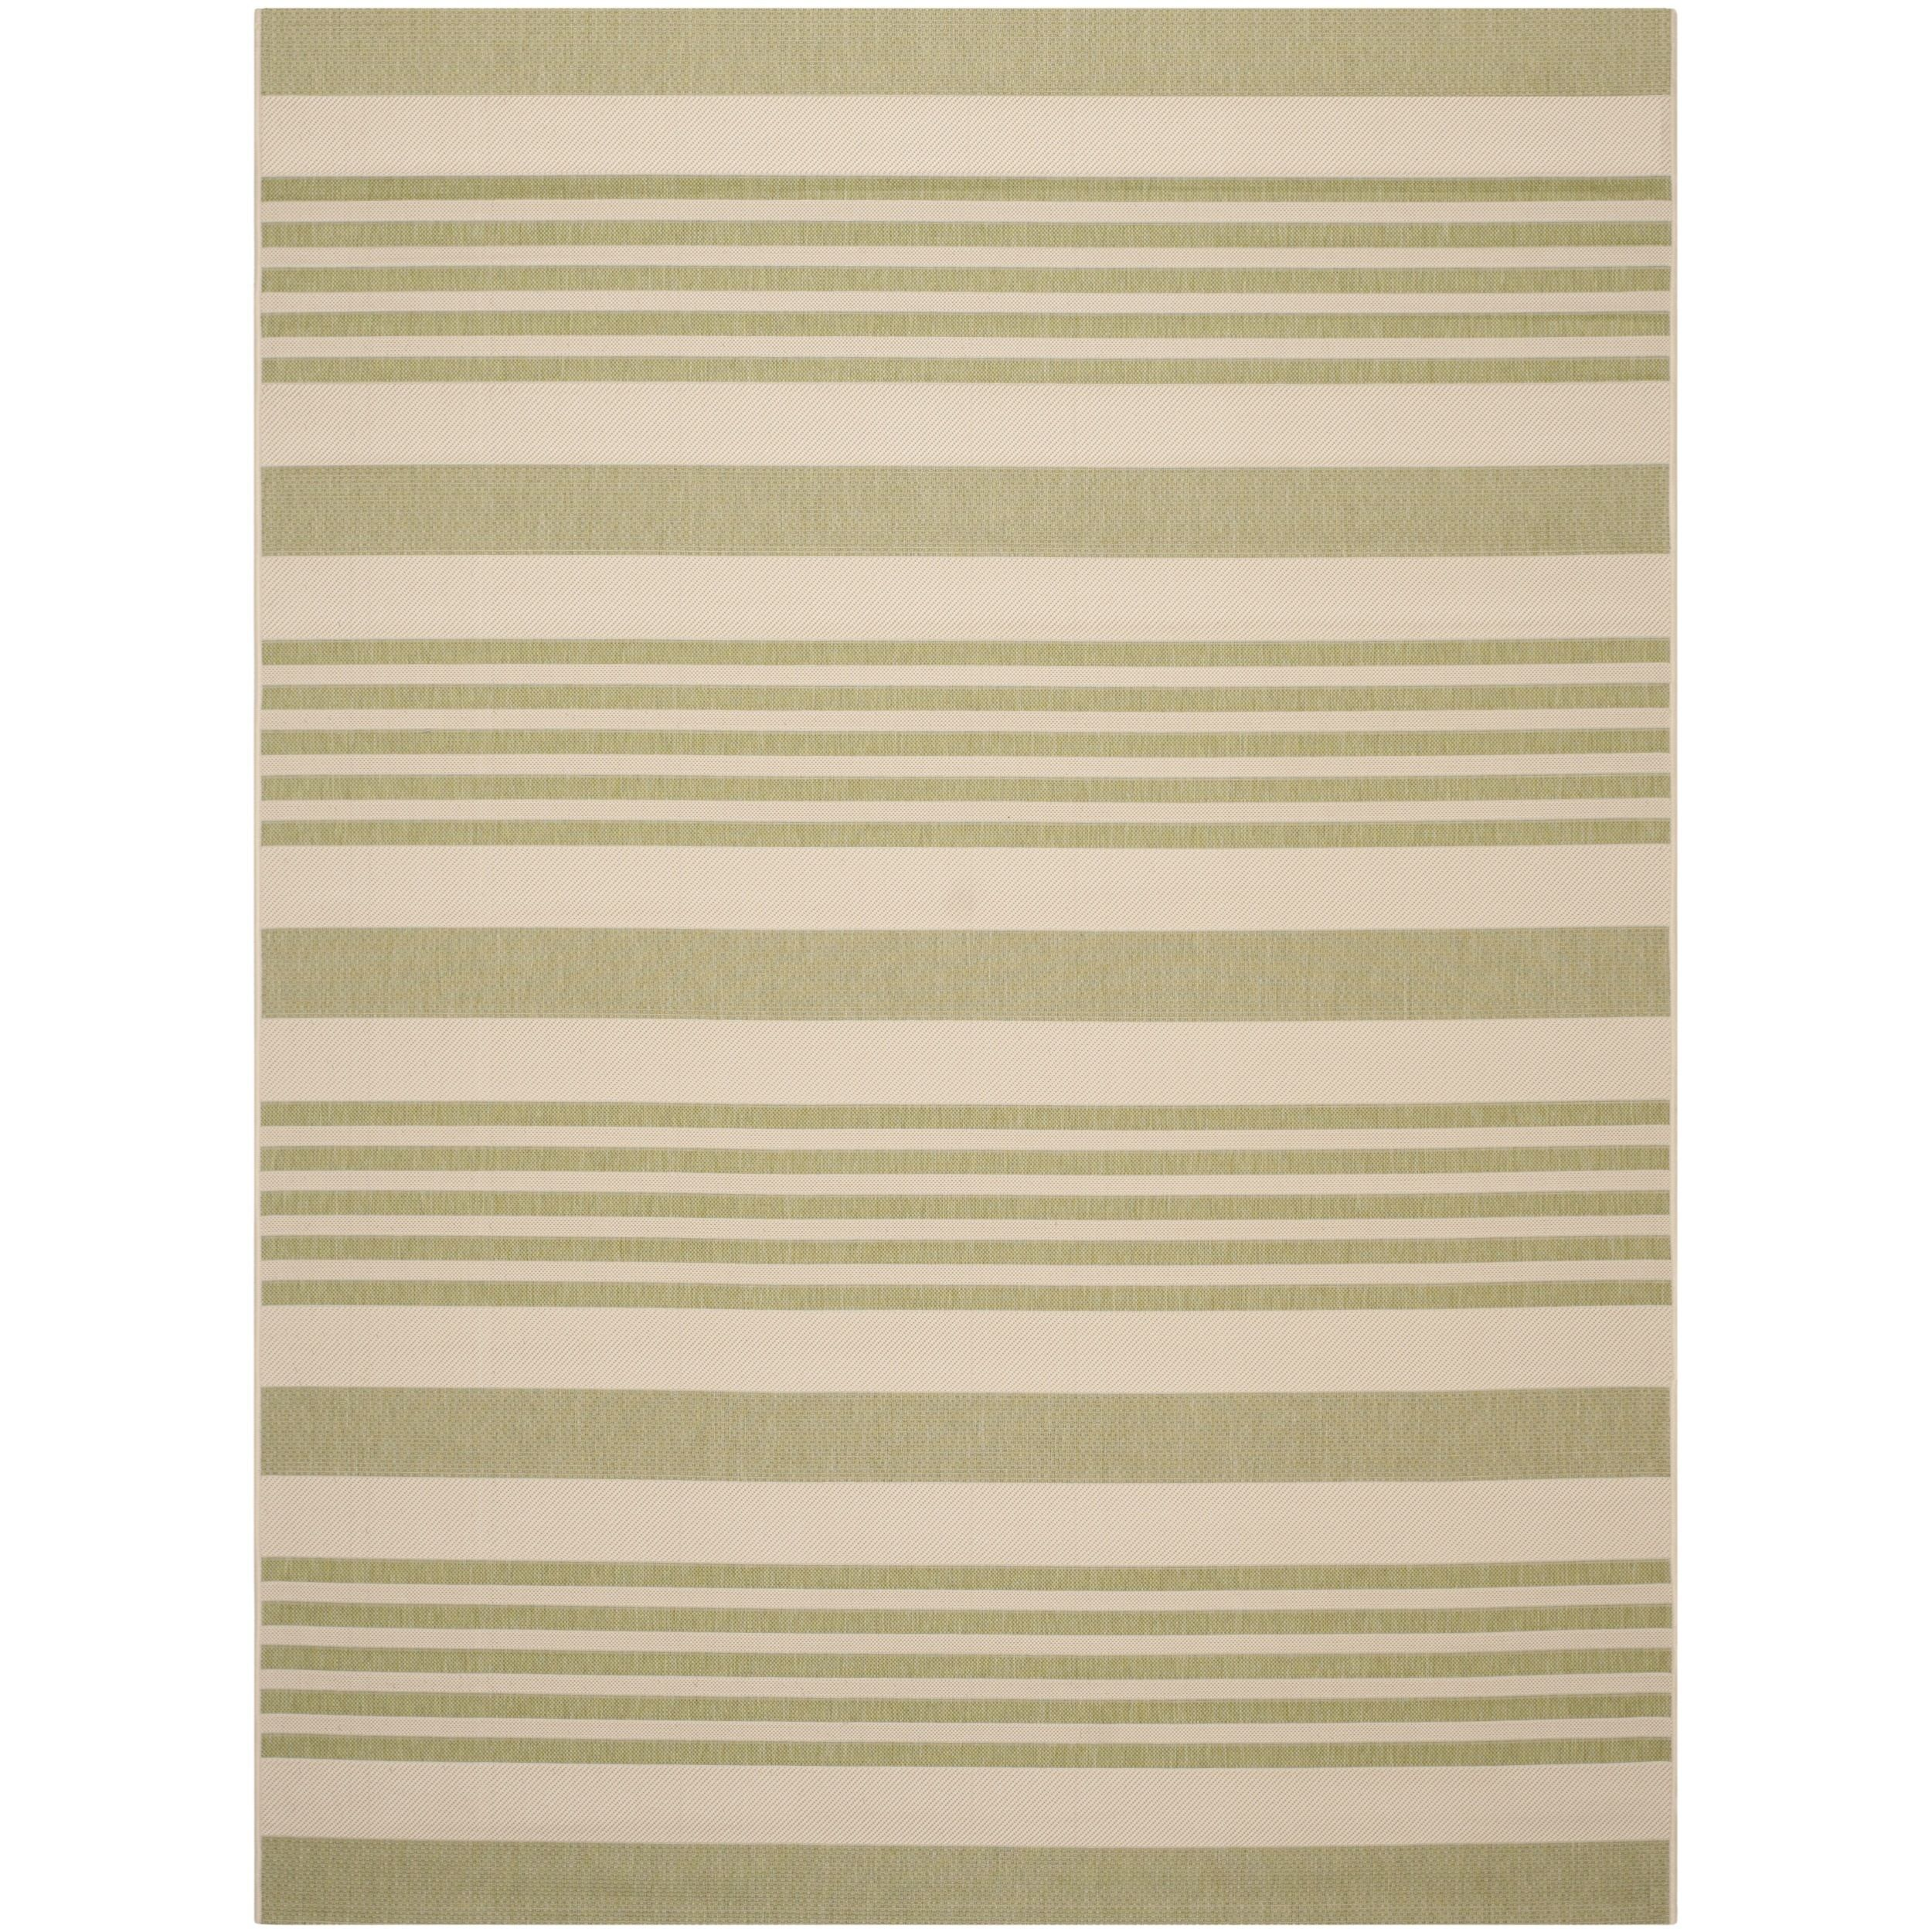 Safavieh Courtyard Stripe Beige Sweet Pea Indoor Outdoor Rug 9 X 12 Com Ping The Best Deals On 7x9 10x14 Rugs